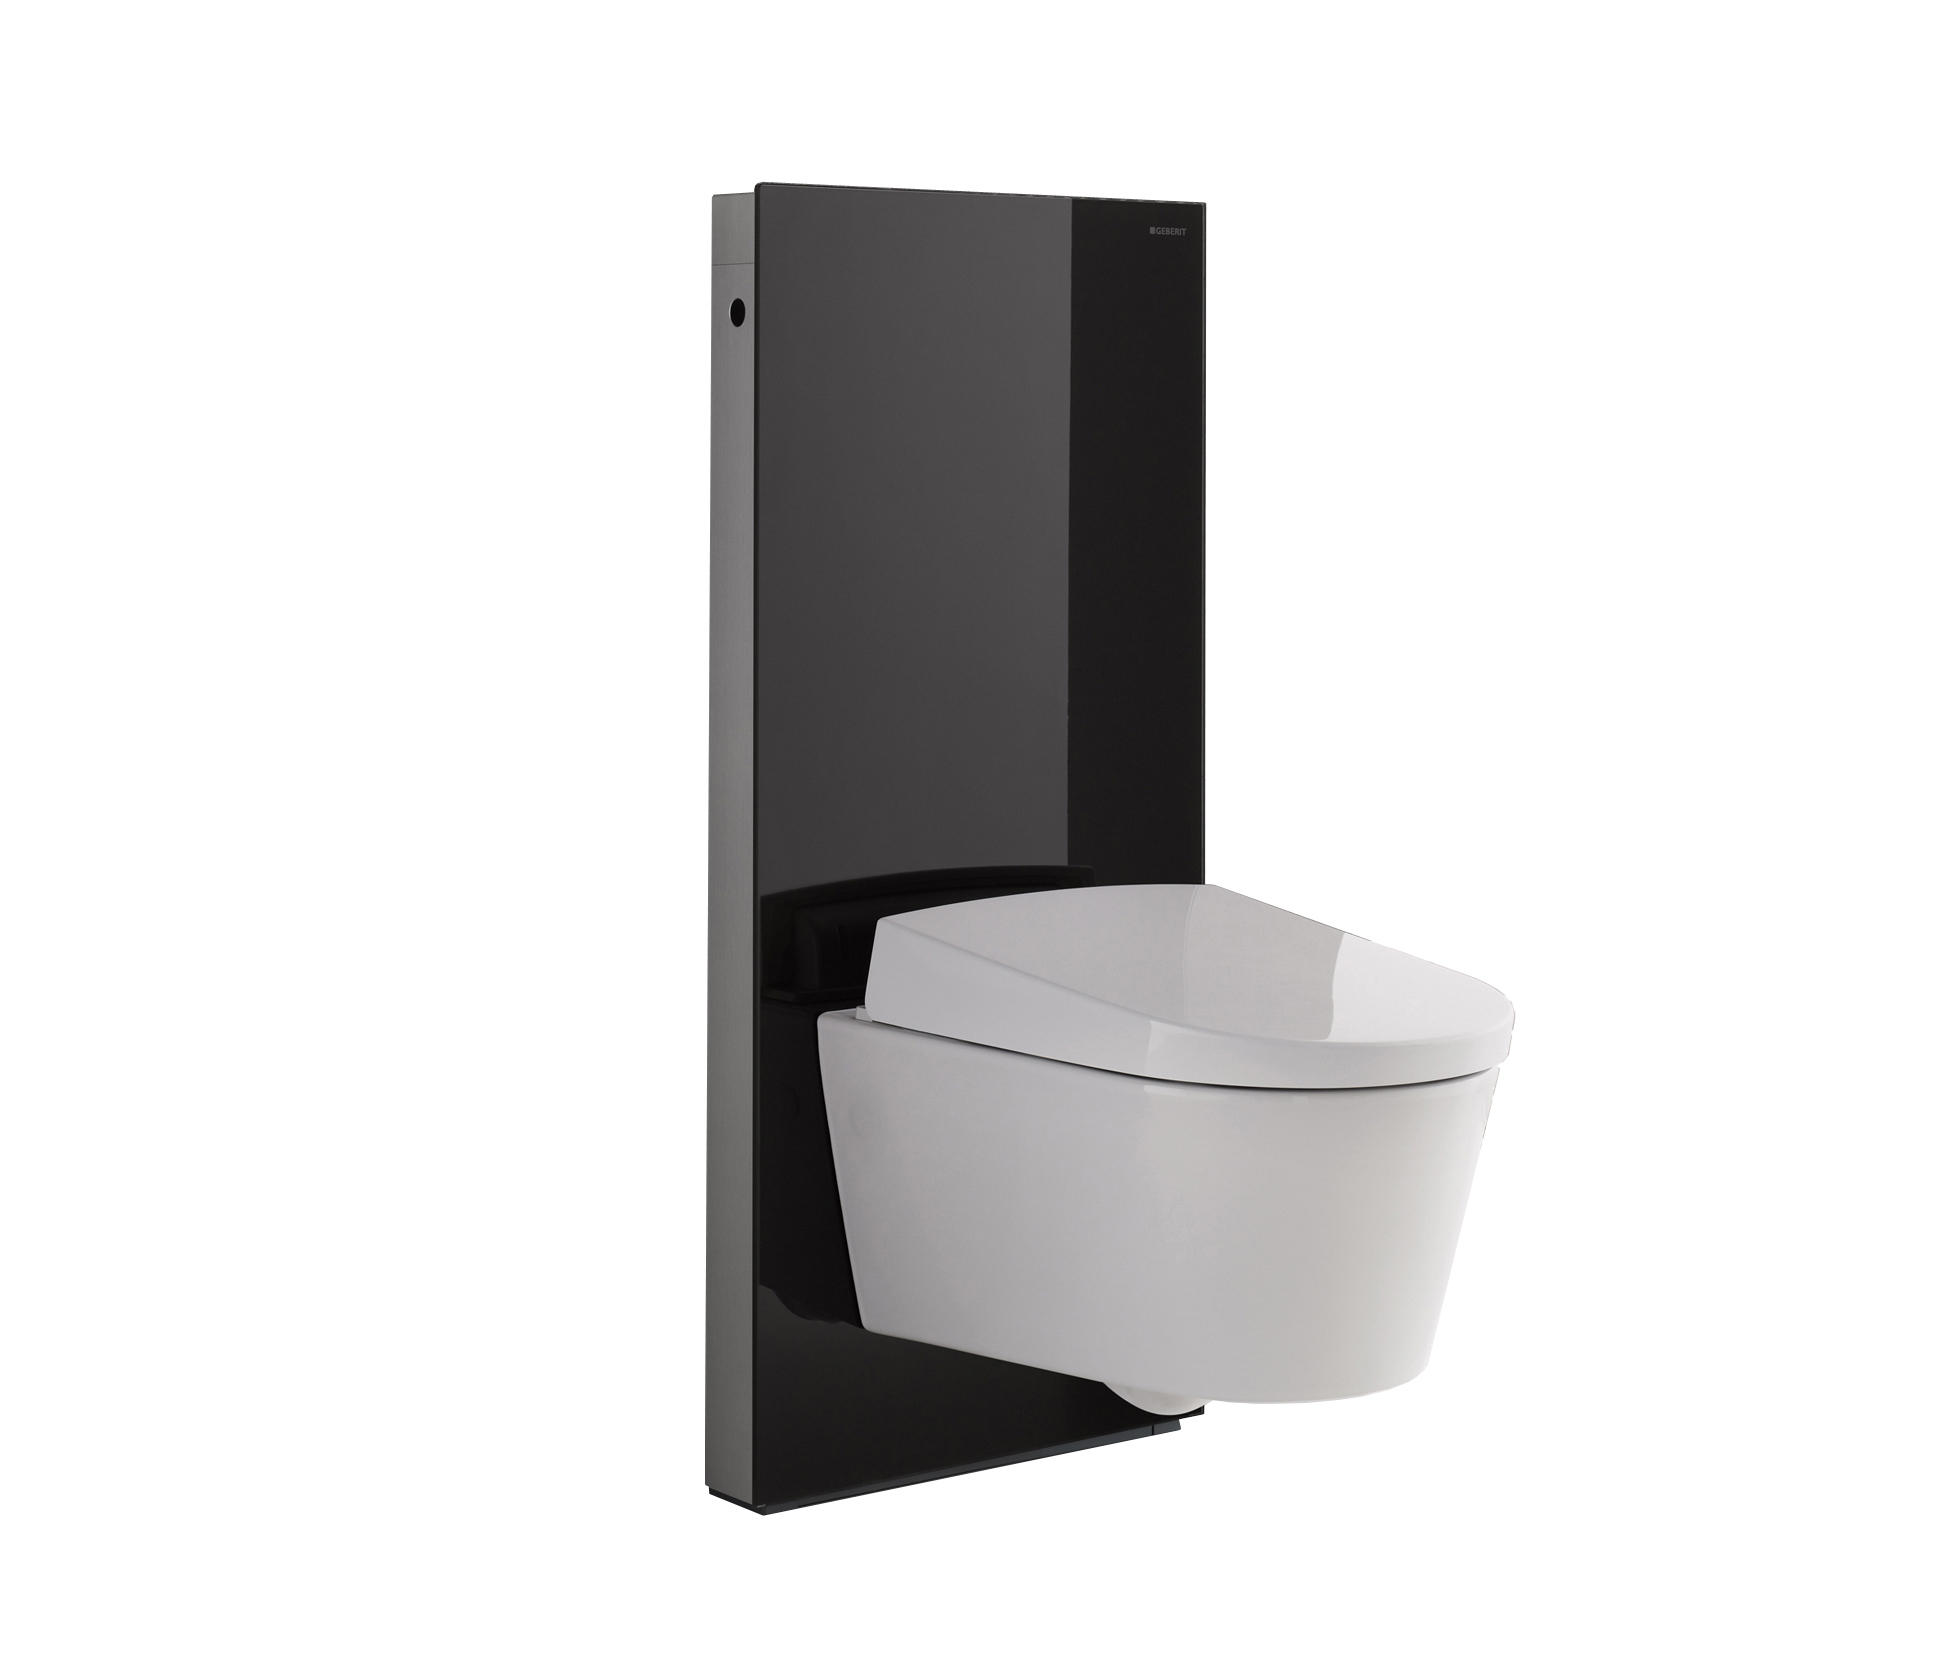 geberit monolith sanitary module for wcs flushes from geberit architonic. Black Bedroom Furniture Sets. Home Design Ideas